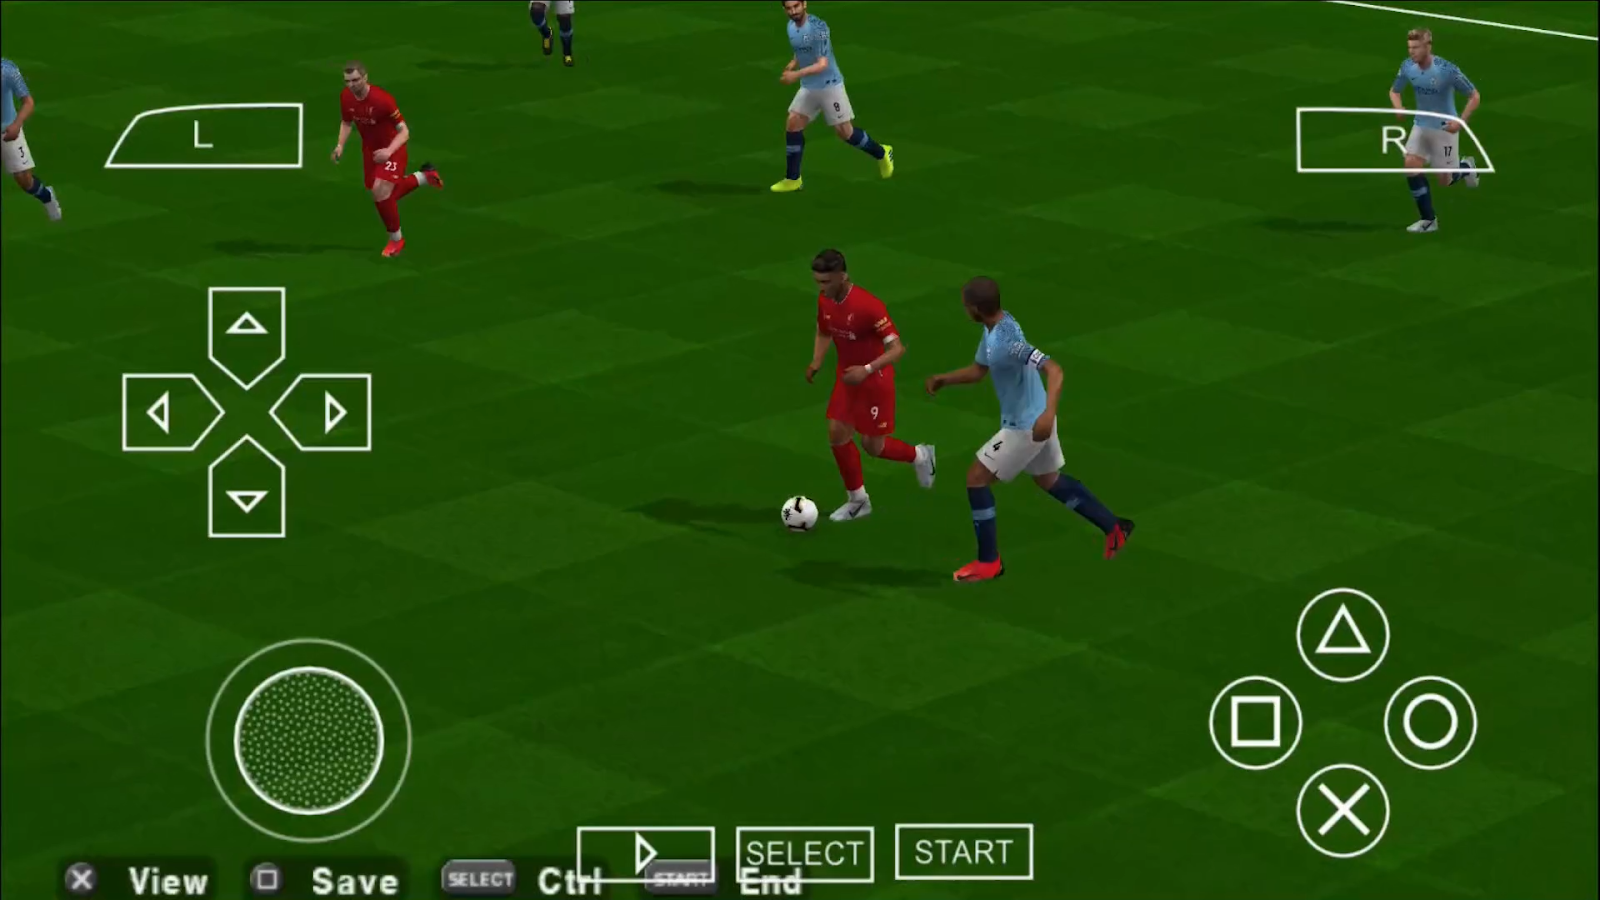 PES 2020 PPSSPP Android Offline 600MB Best Graphics New Update